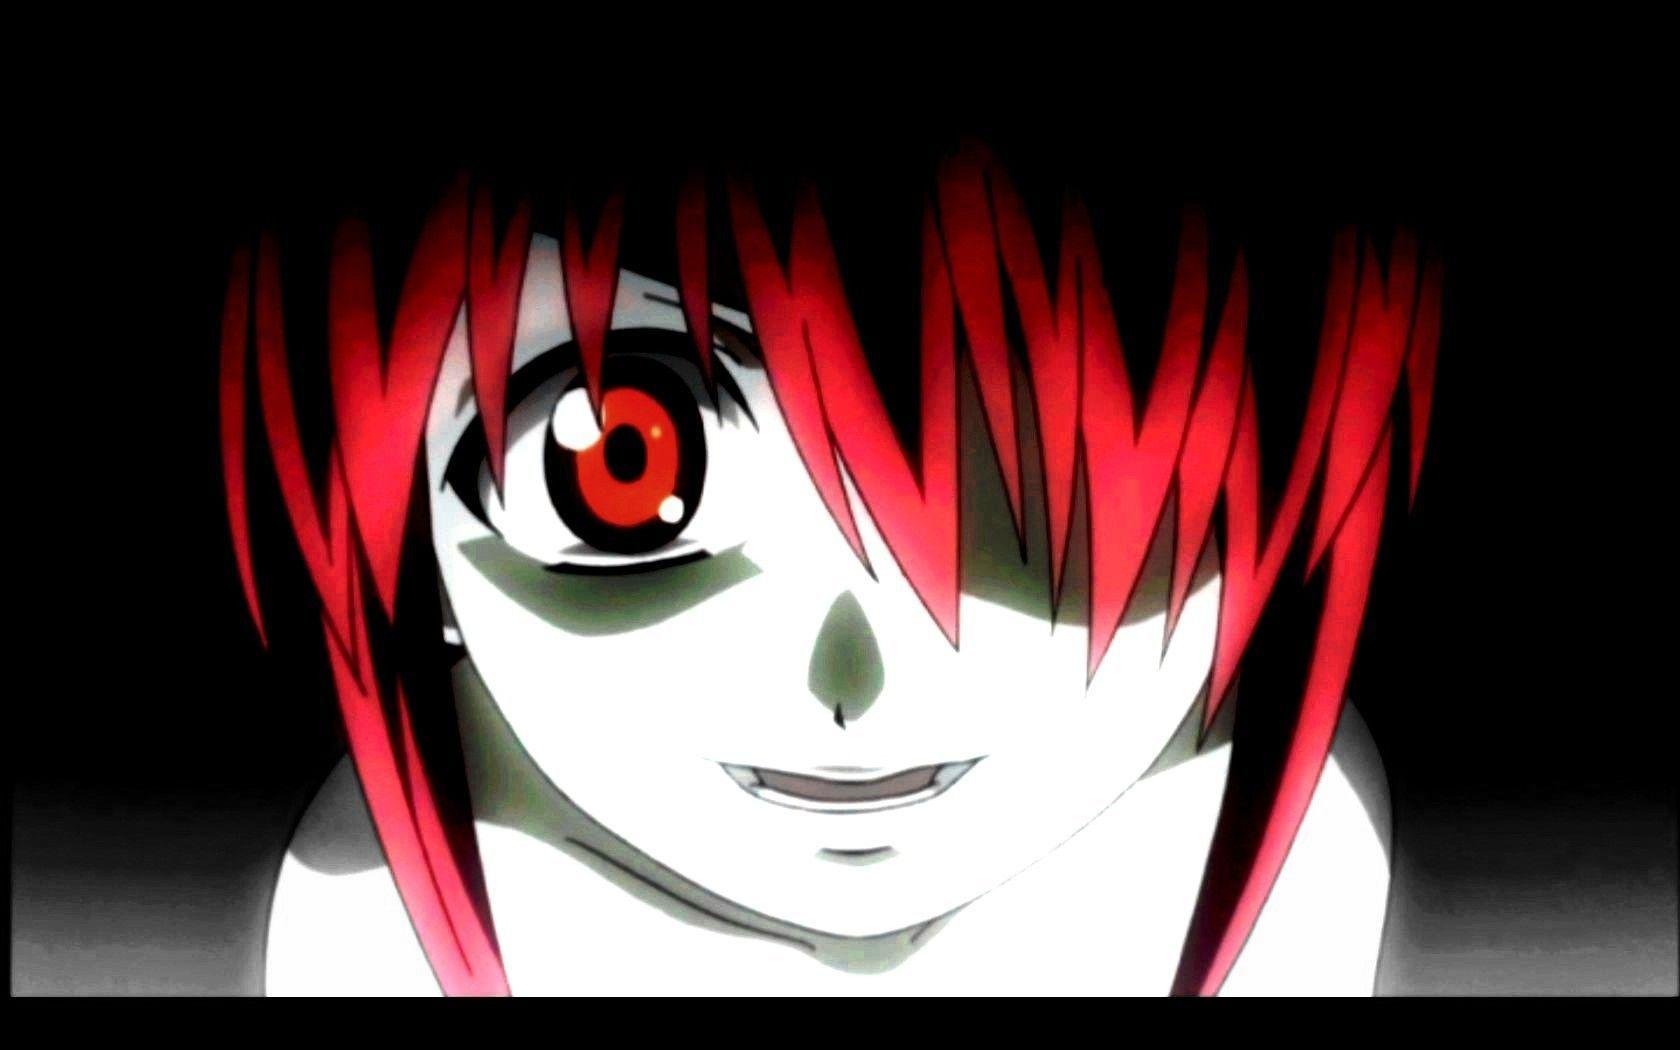 Elfen lied wallpapers wallpaper cave - Gore anime wallpaper ...